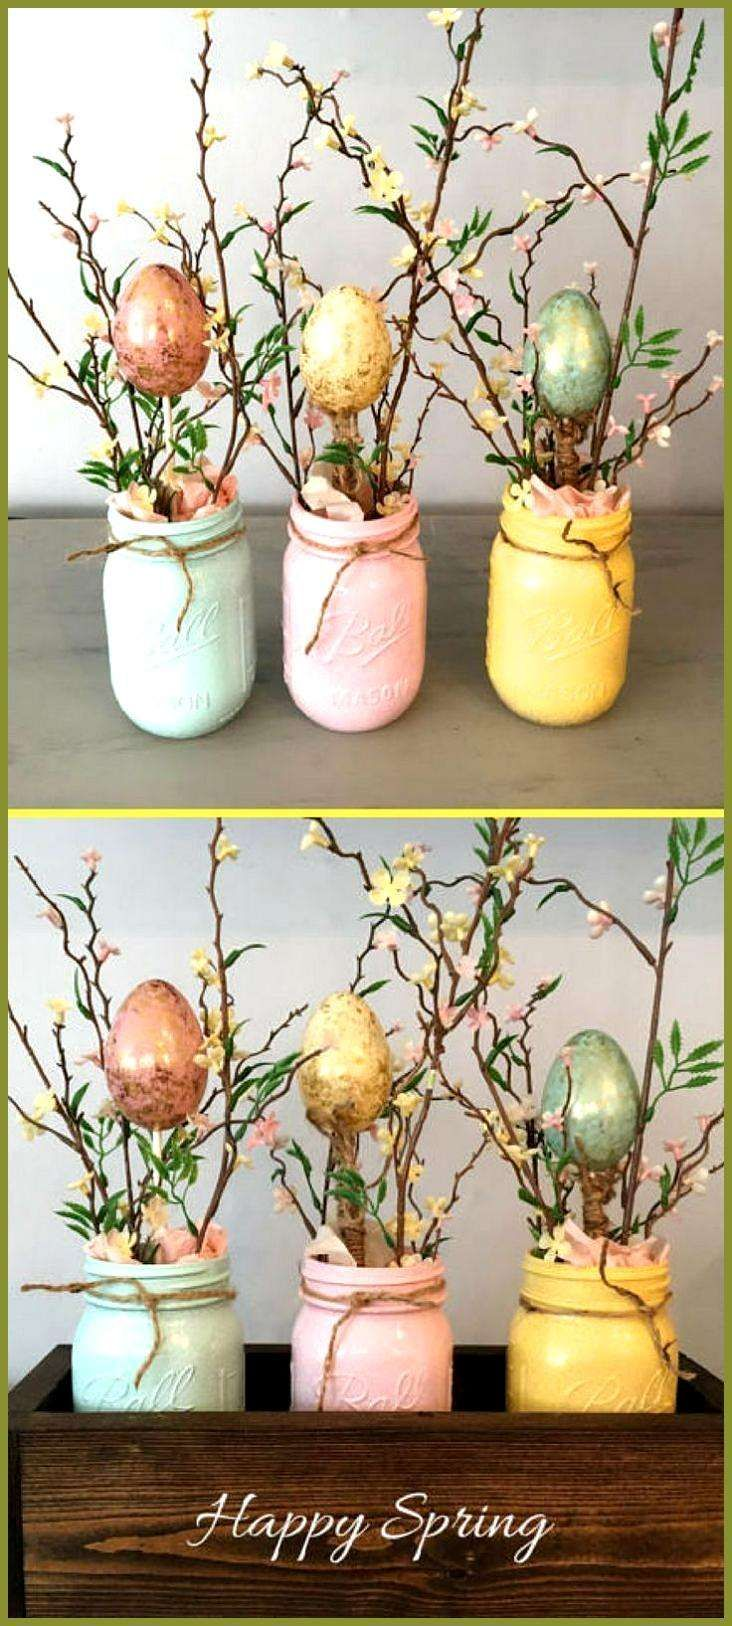 50 Gorgeous DIY Easter Decor Ideas 50 Gorgeous DIY Easter Decor Ideas  This Tiny Blue House Informations About 50 Gorgeous DIY Easter Decor Ideas Pin You can easily use m...